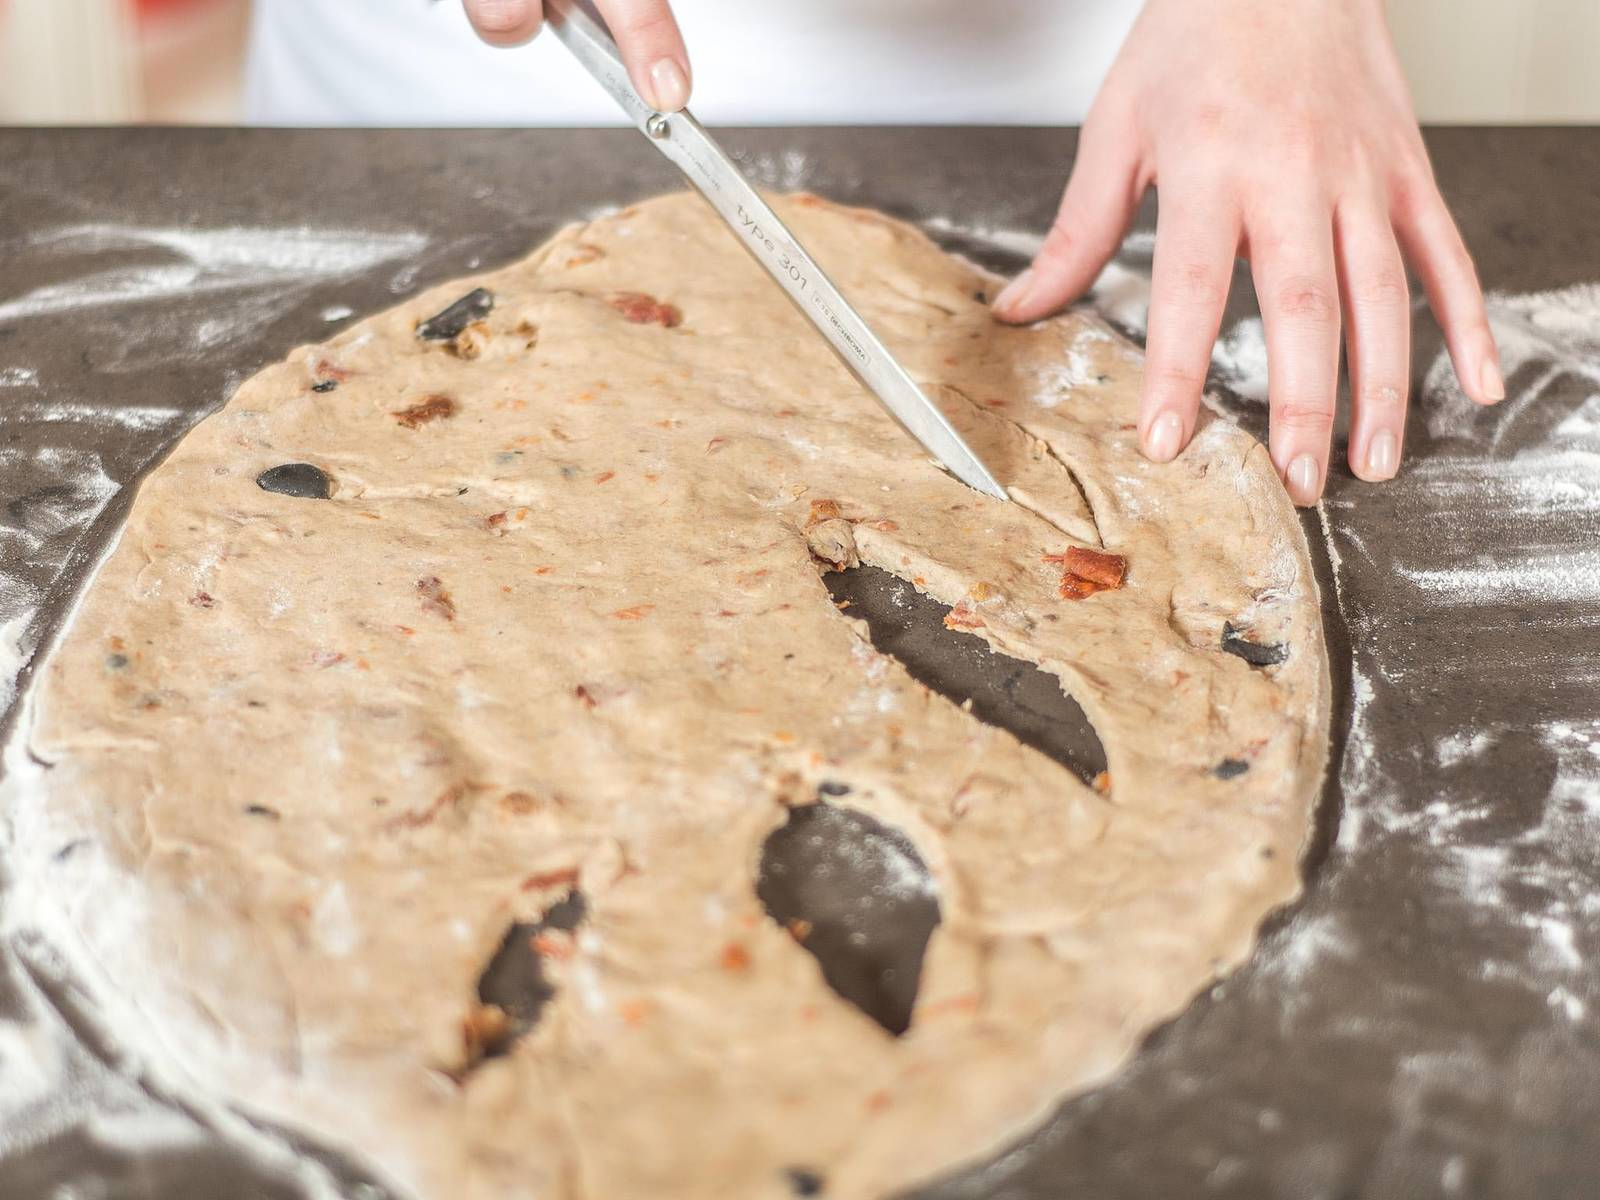 Using a sharp knife, cut out individual sections of the dough. Transfer the fougasse onto a baking rack, cover and leave to rise in a warm place for approx. 20 min.